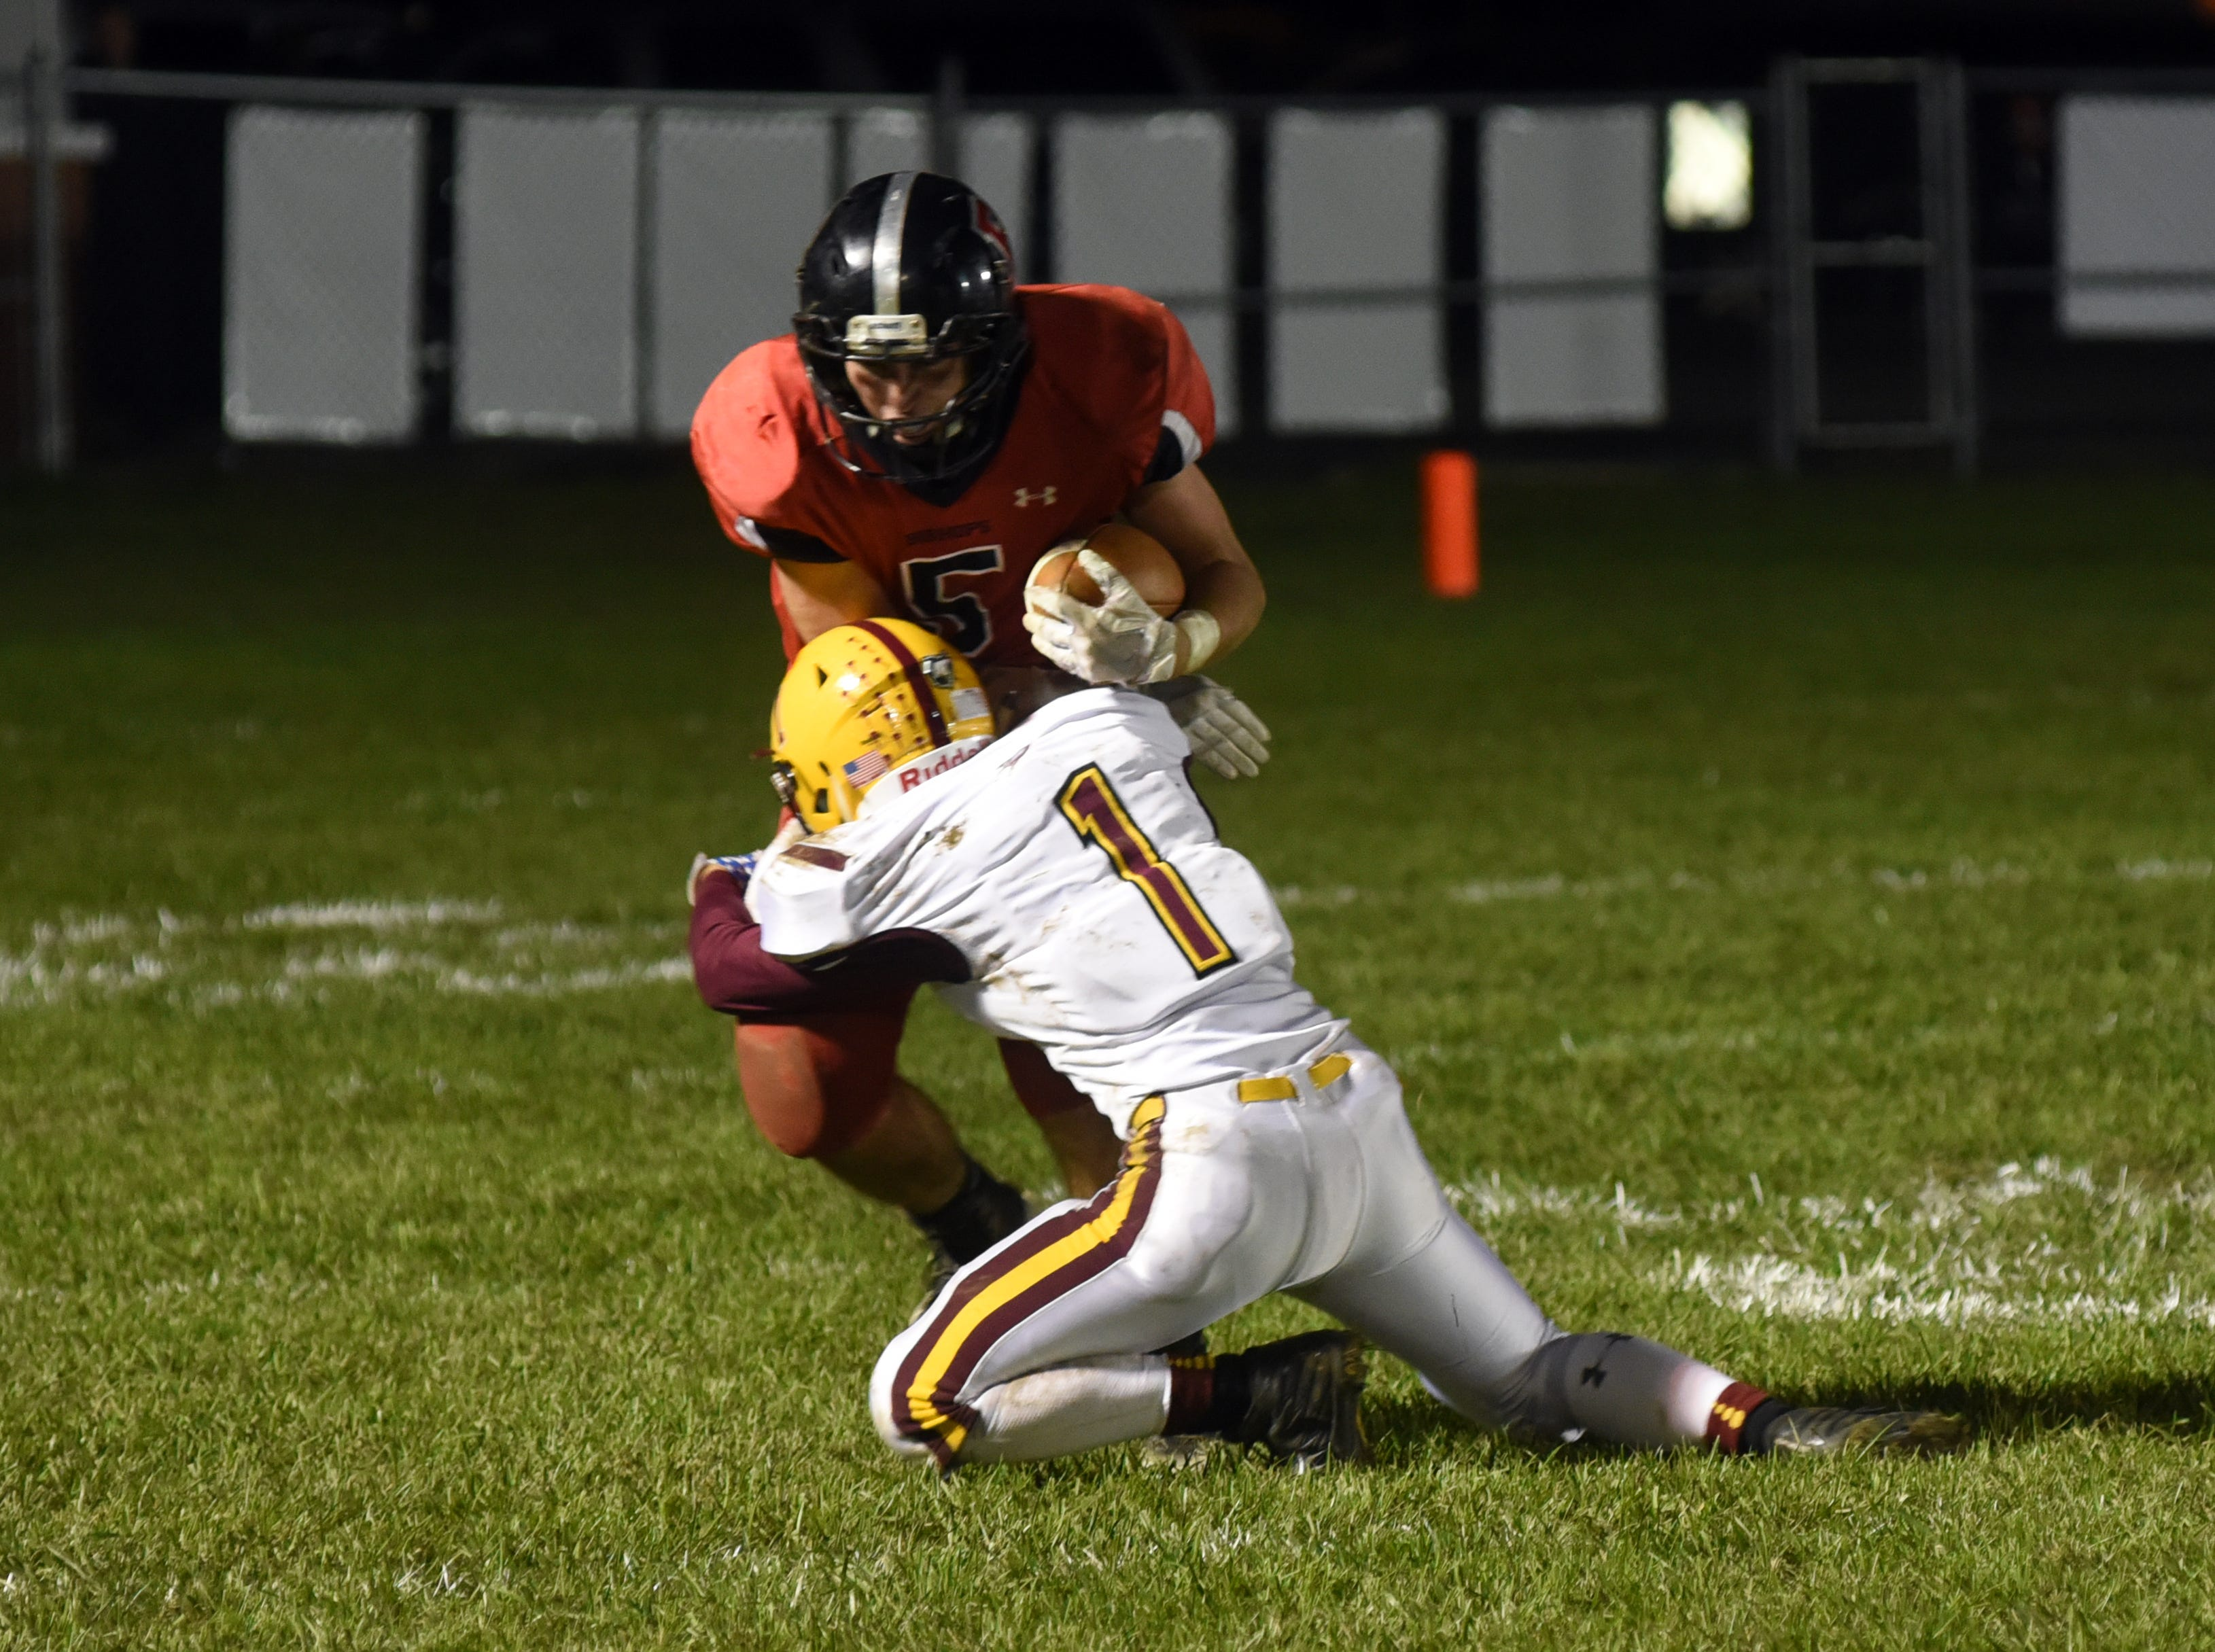 Berne Union's Wyatt Miller tackles Rosecrans' Marcus Browning in Berne Union's 41-14 win on Friday.